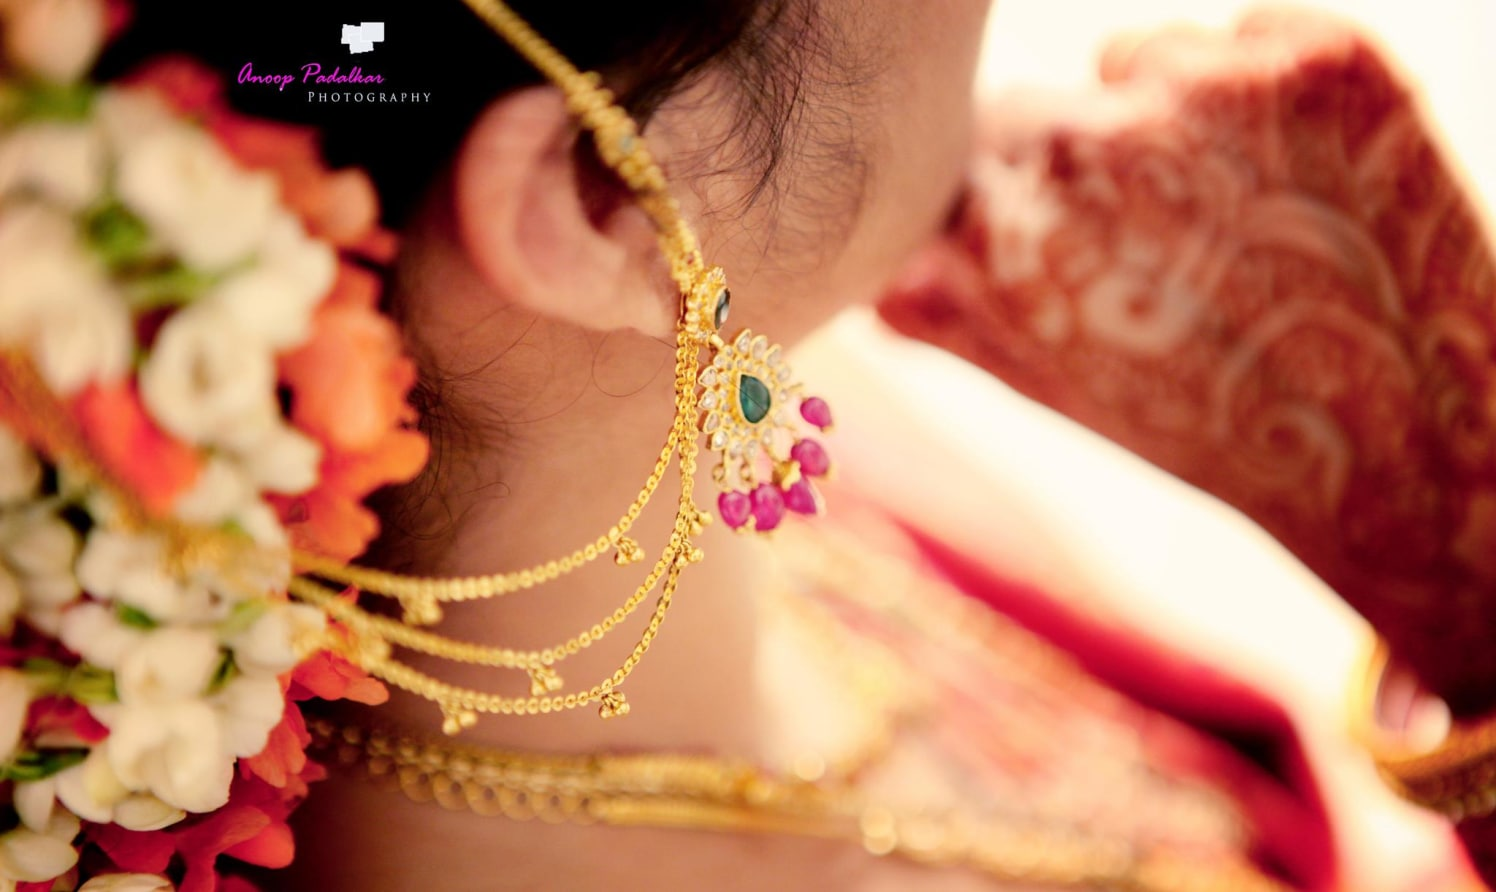 Bridal necessities by Wedding Krafter Wedding-photography | Weddings Photos & Ideas